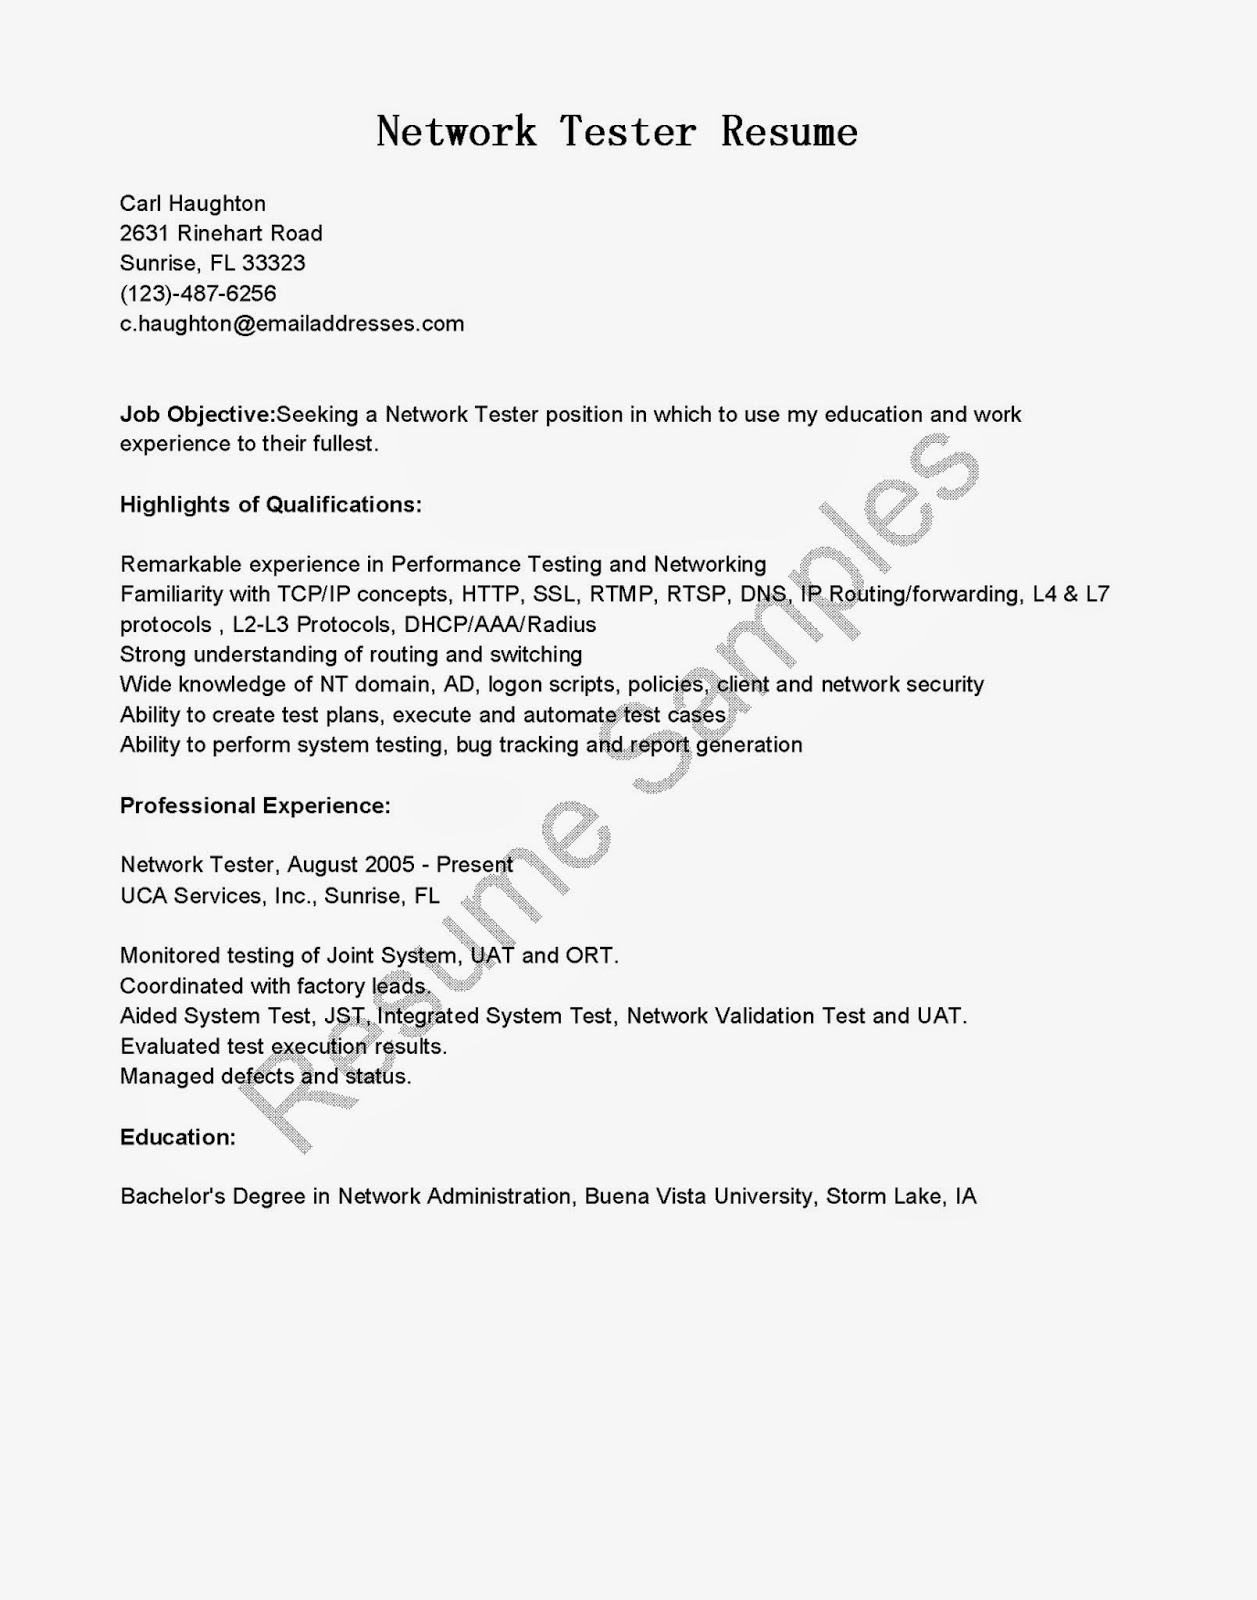 Resume Samples Network Tester Resume Sample